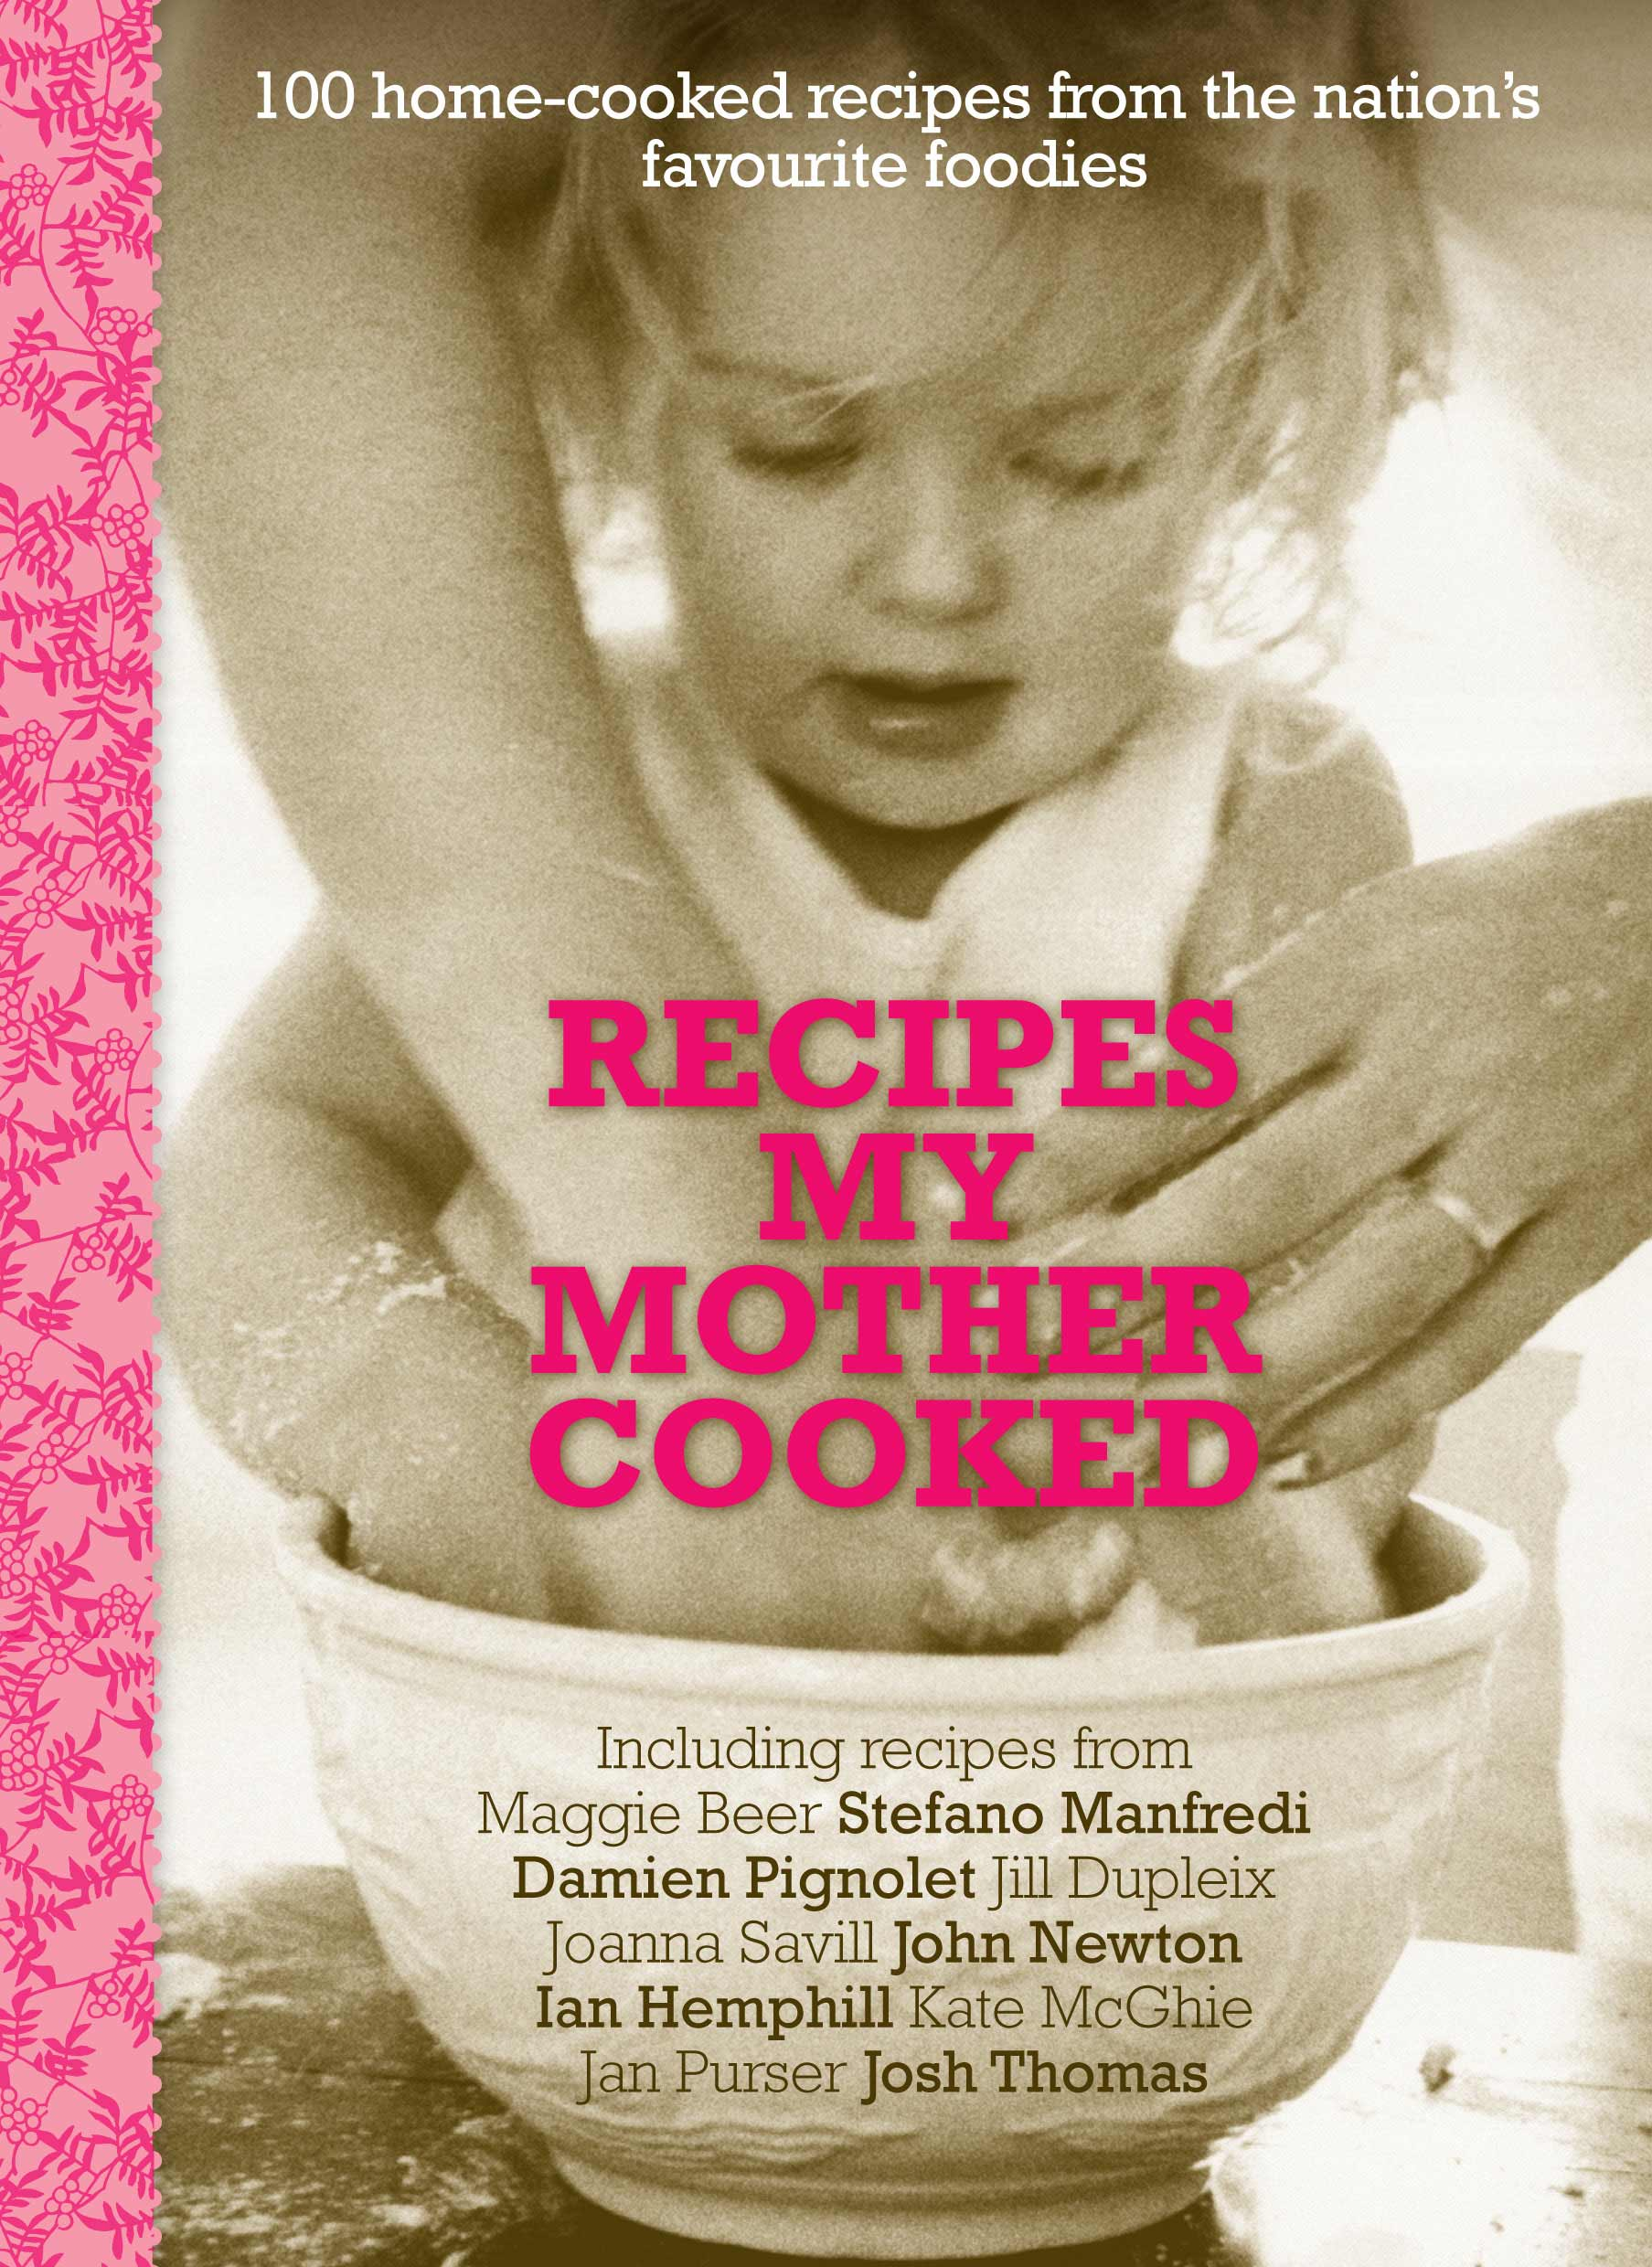 Recipes My Mother Cooked. Click on the cover for more information.